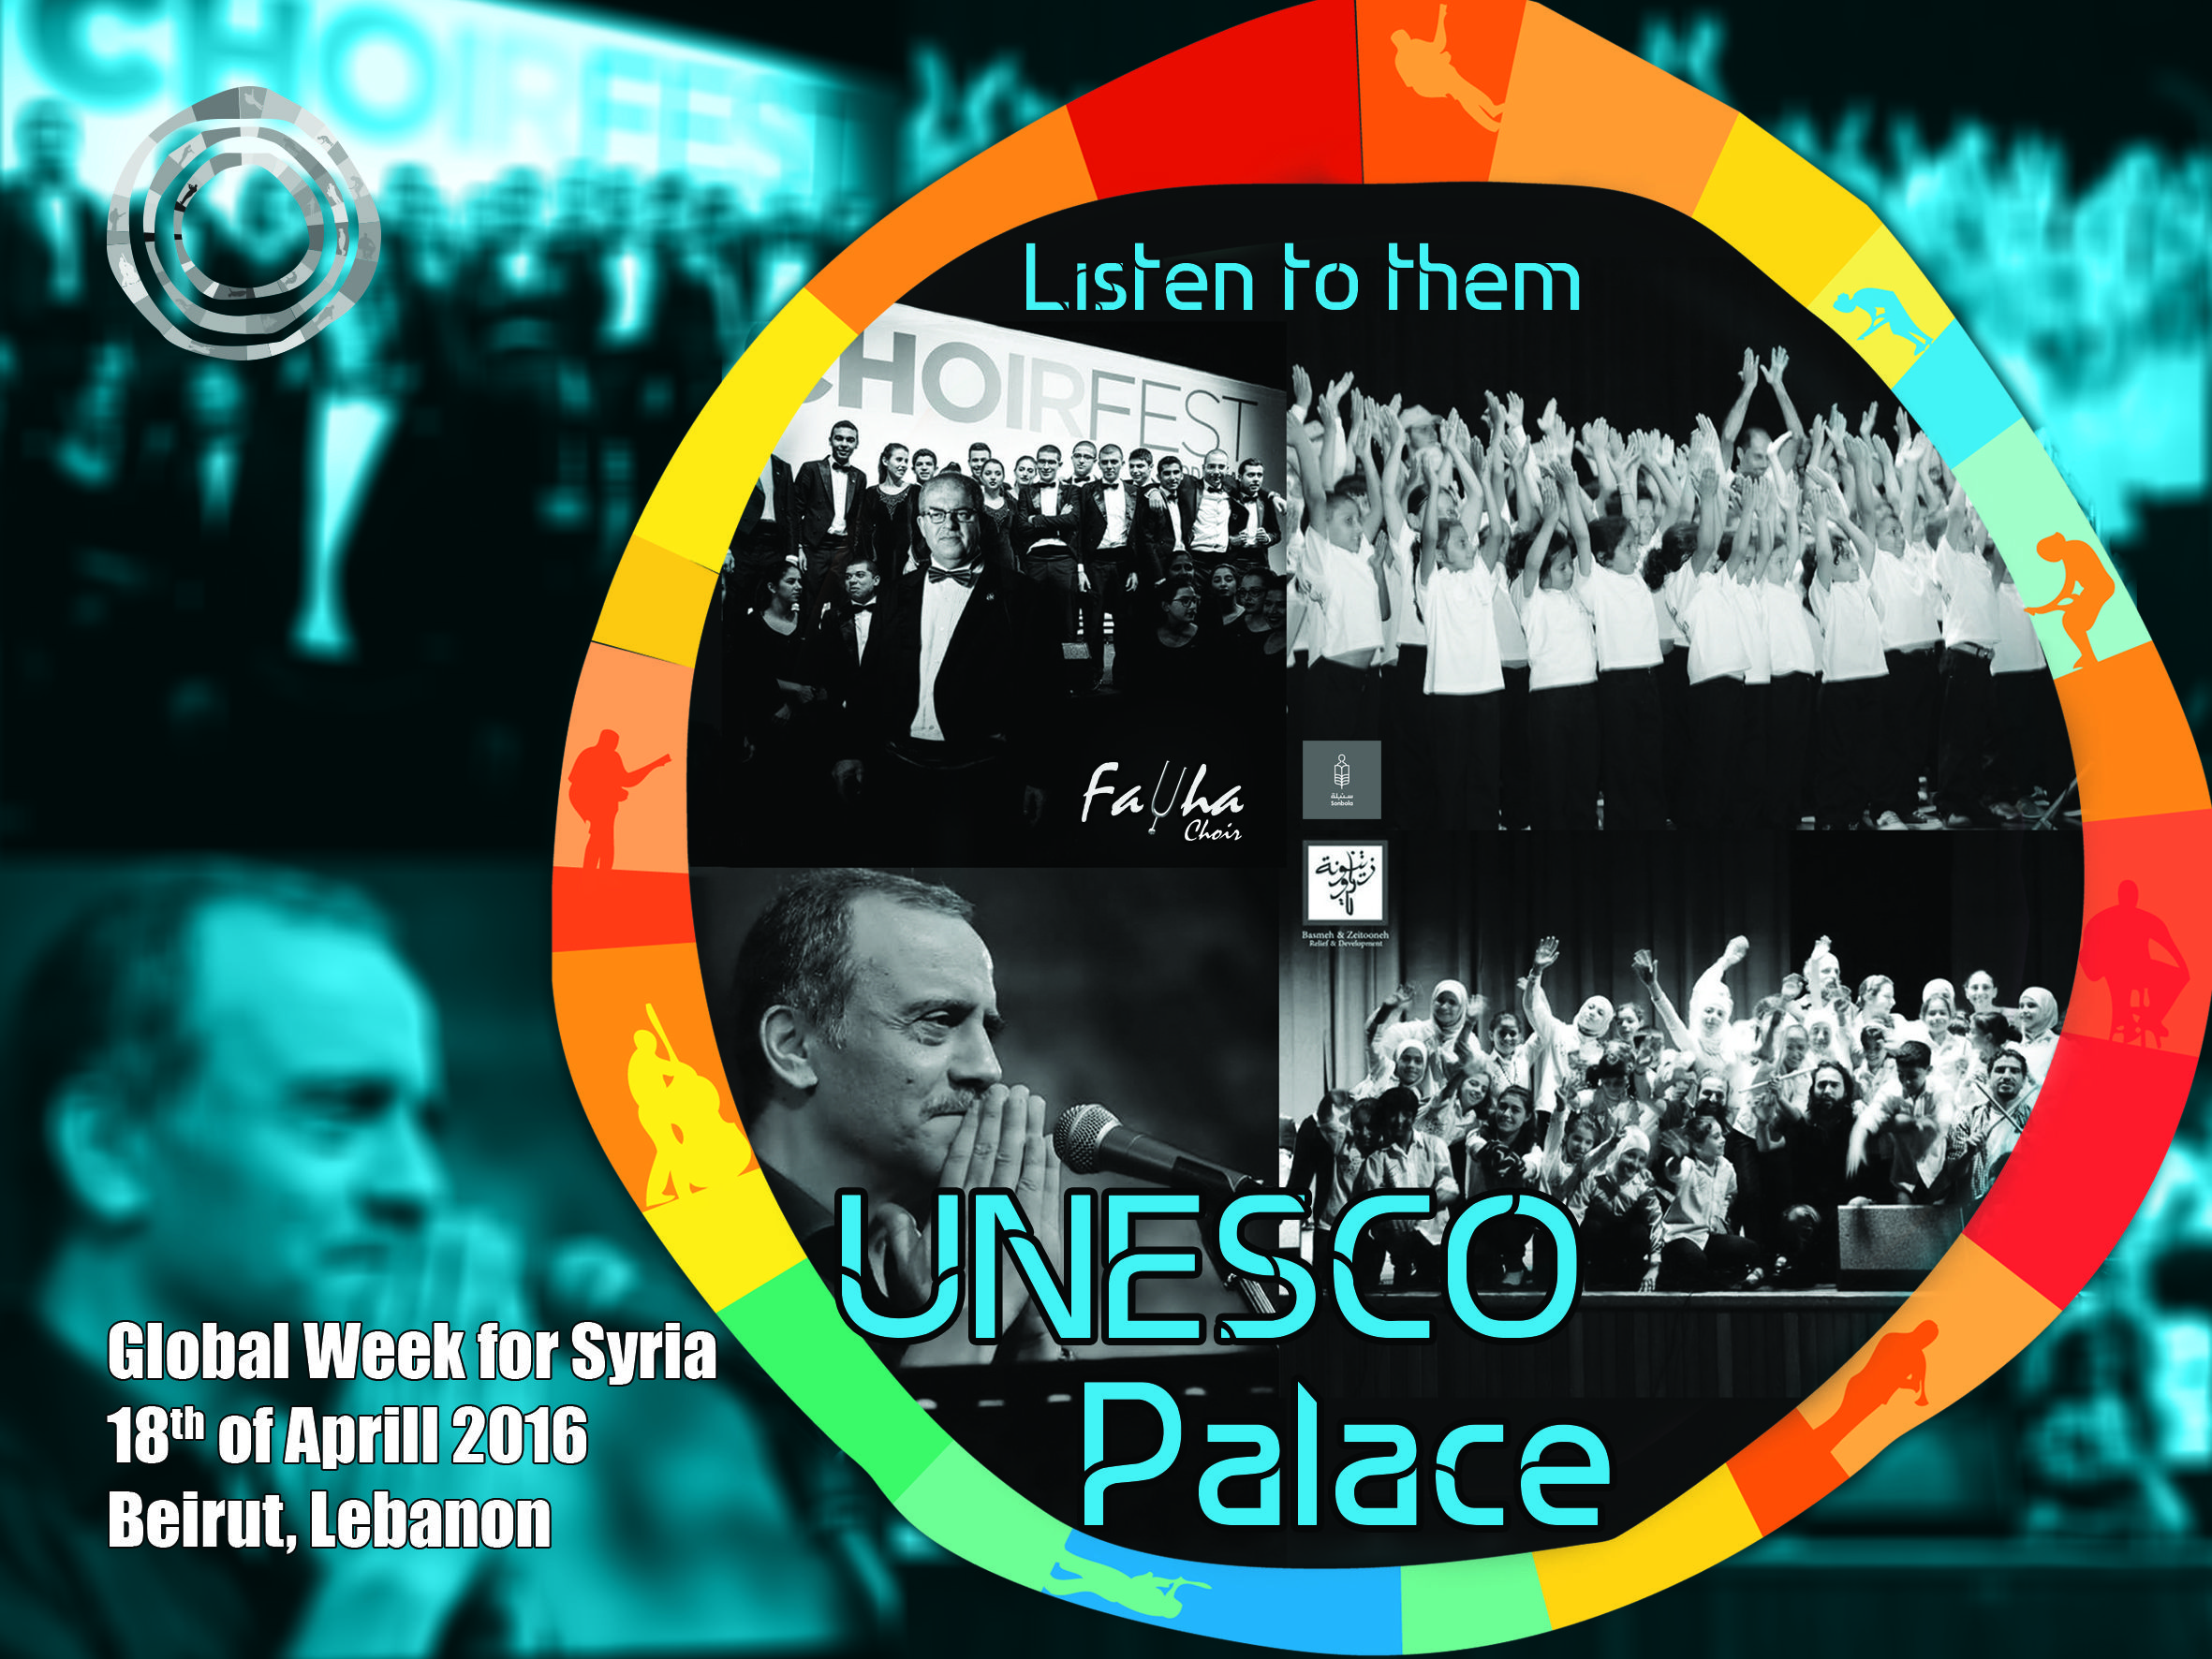 On April 18th The Big Opening Will Be In Unesco Palace Beirut Sonbola Children Choir Chants Peace Accompanied By Award Winning Fayha Choir With Guest Of Honor